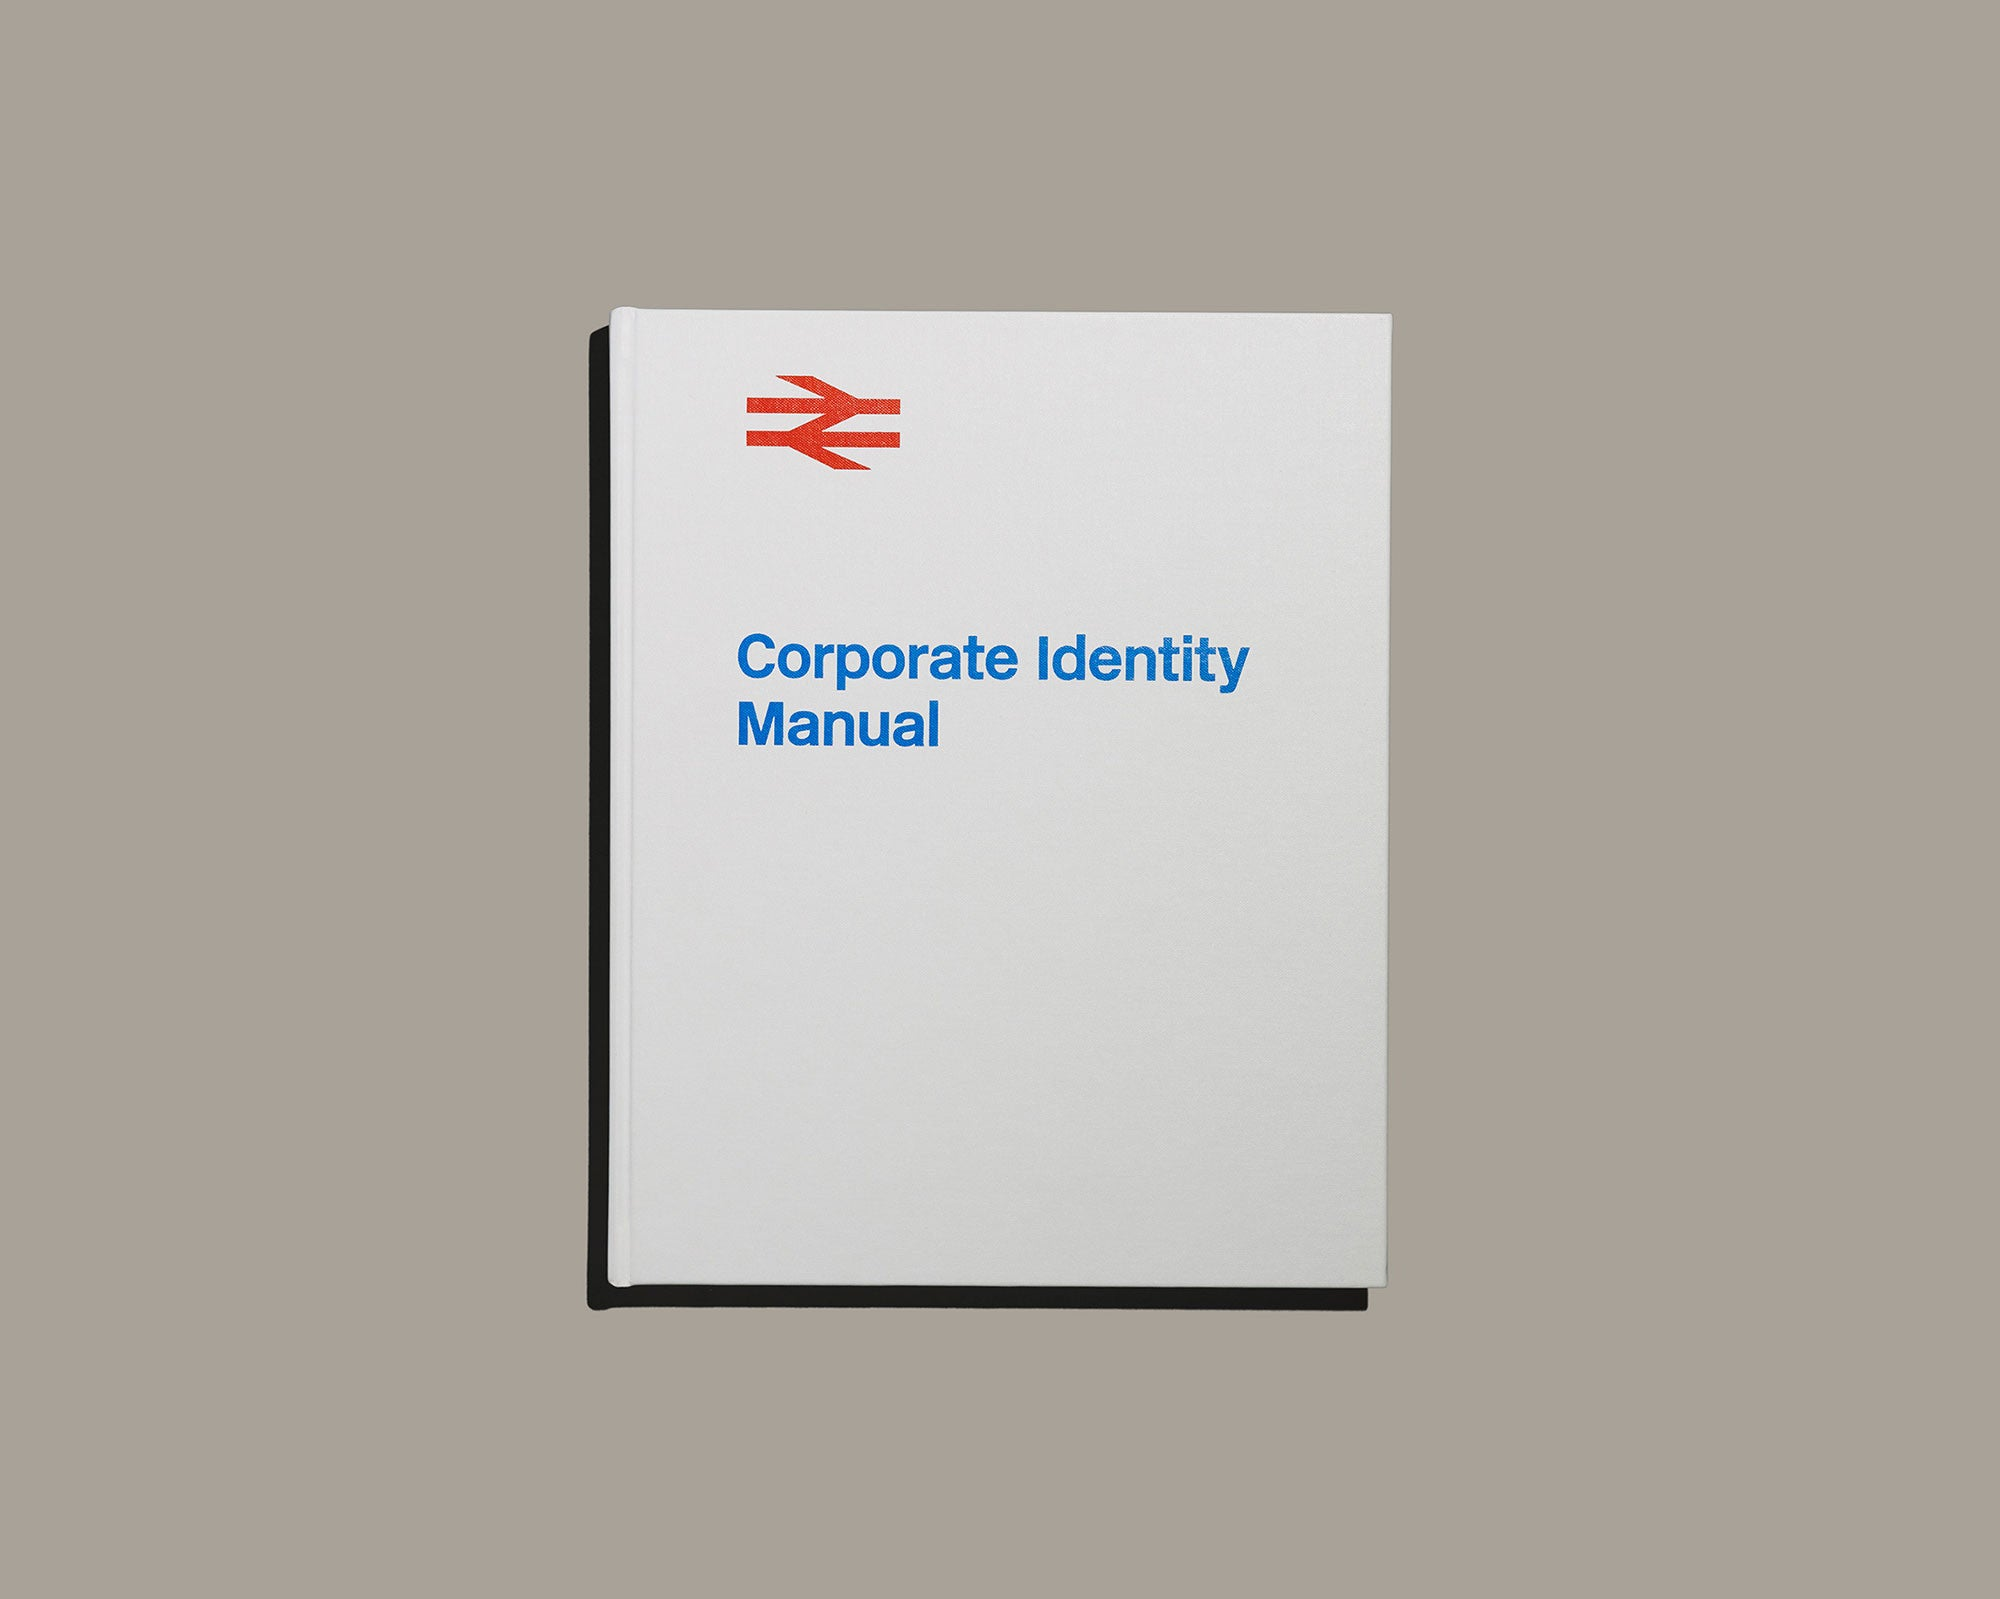 x1 Copy of the Manual - British Rail Corporate Identity Manual